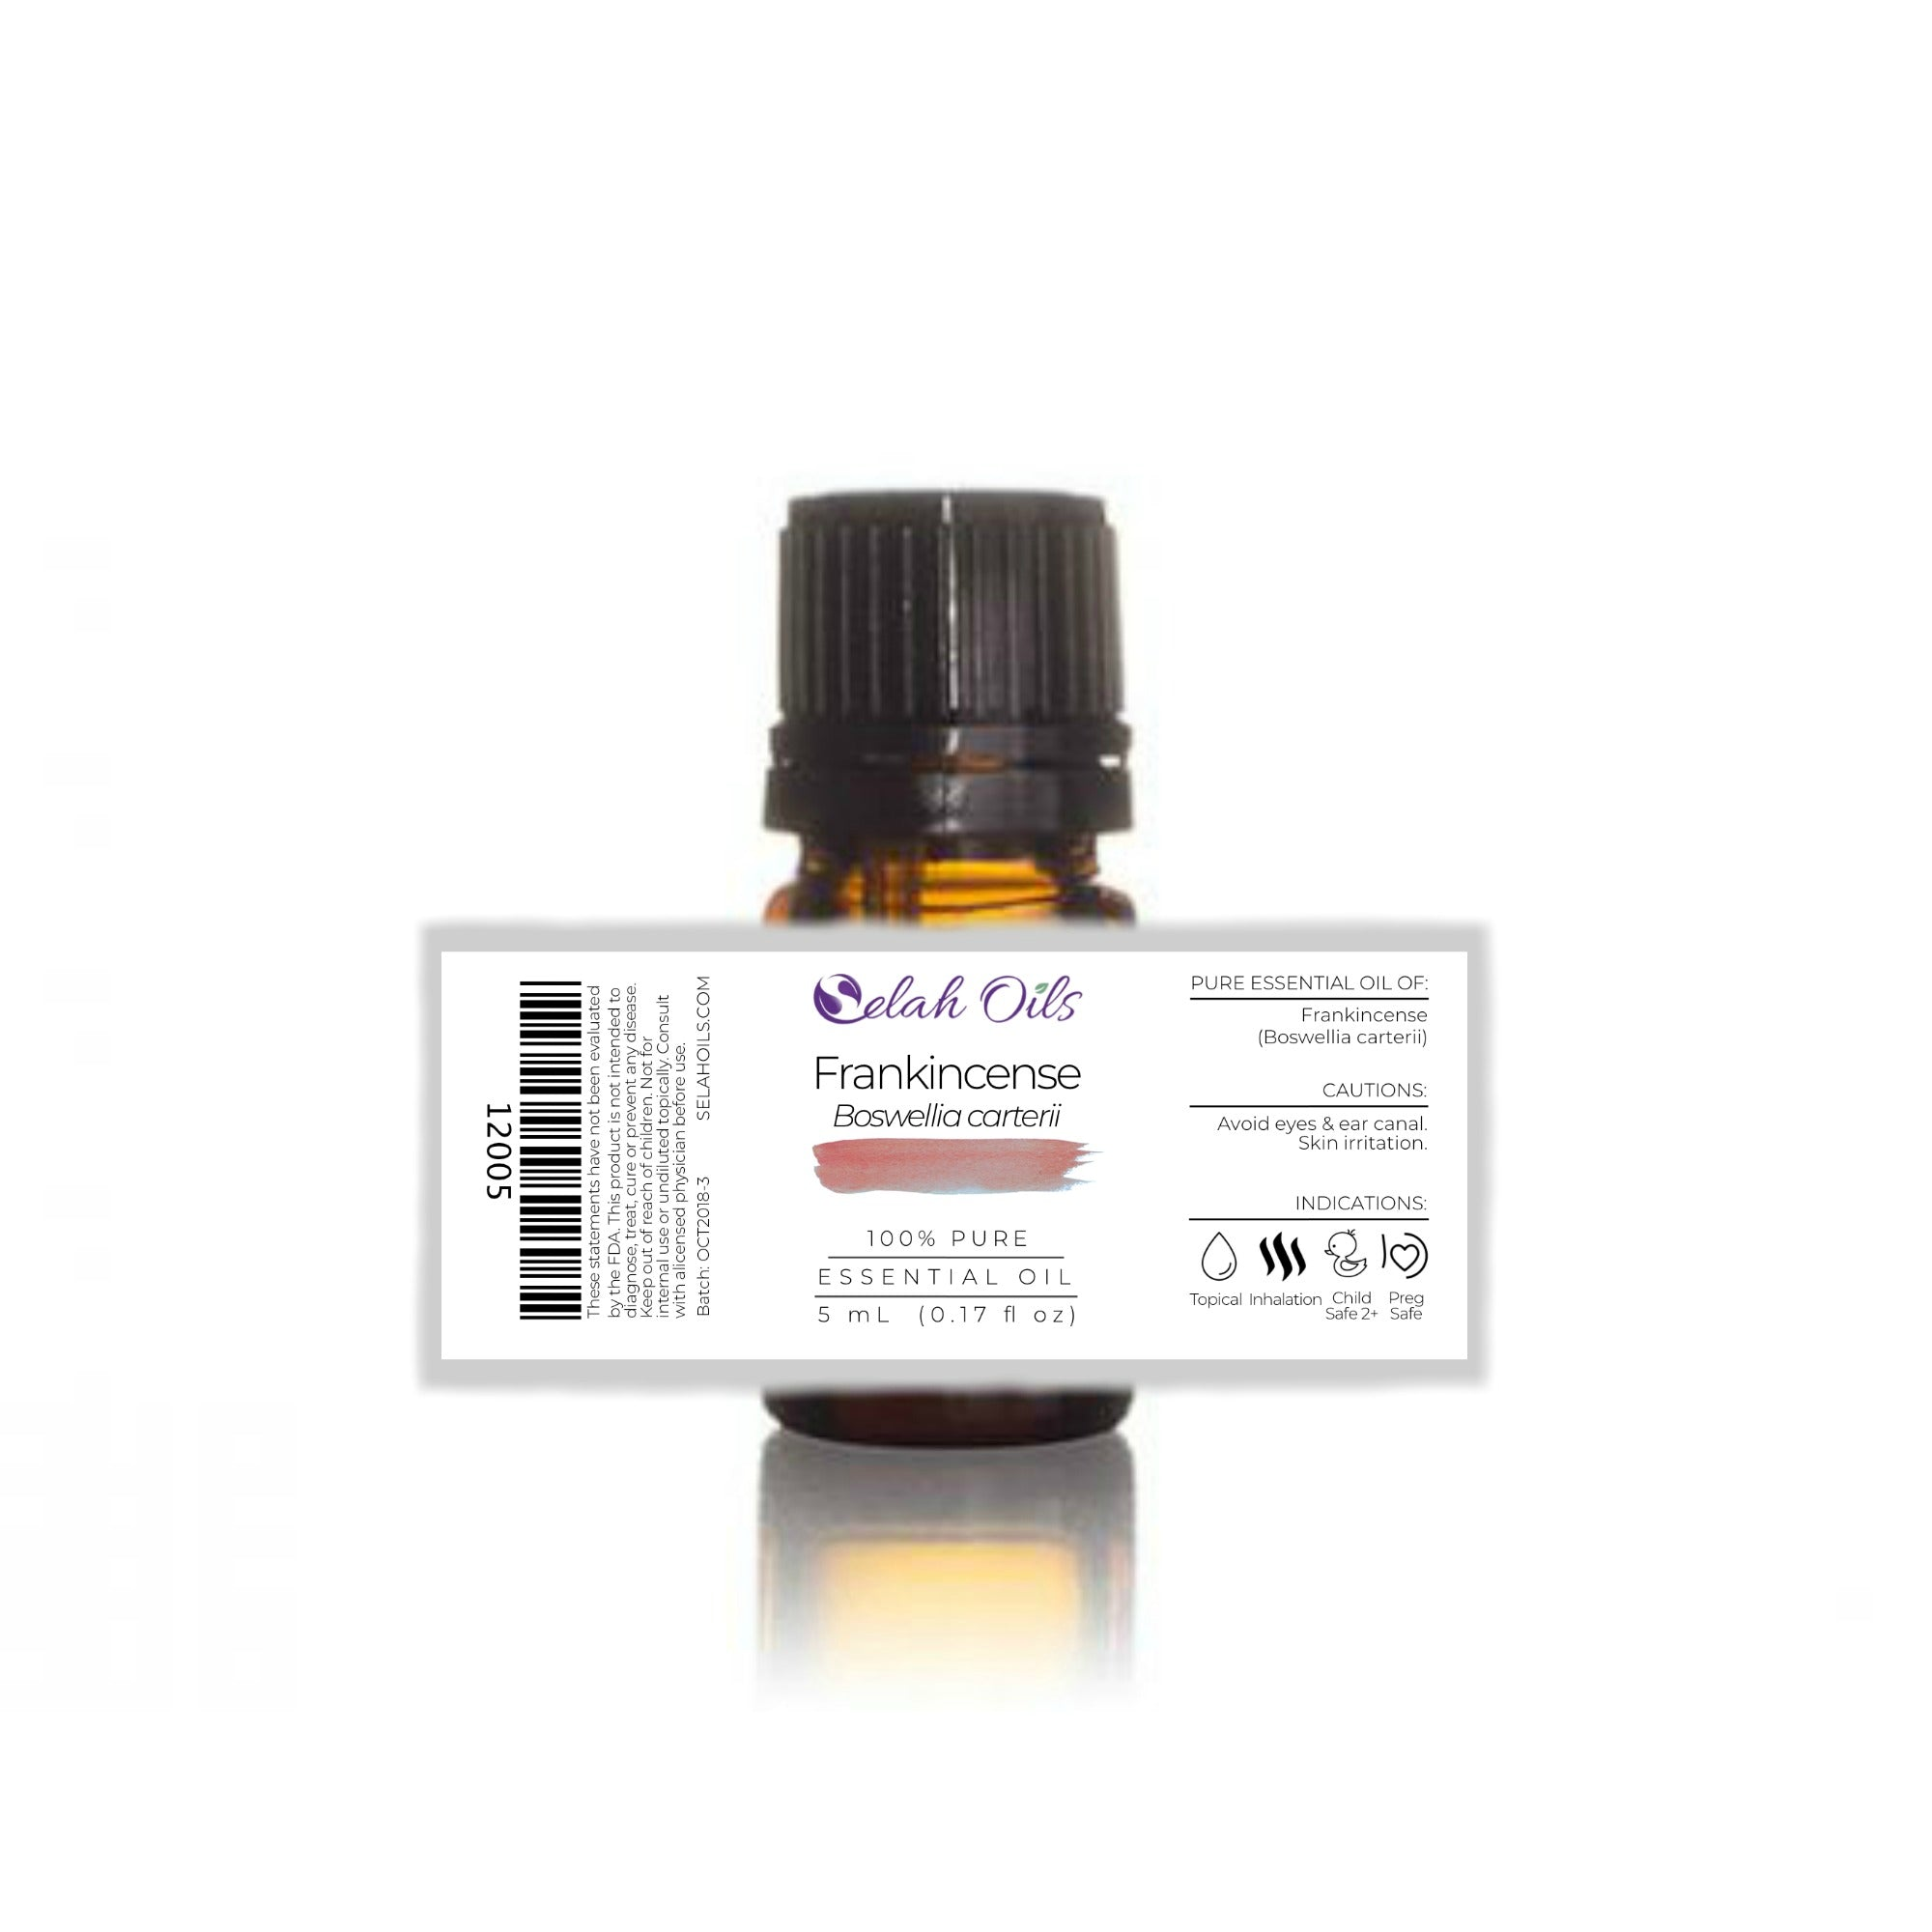 Frankincense (Boswellia carterii) Essential Oil